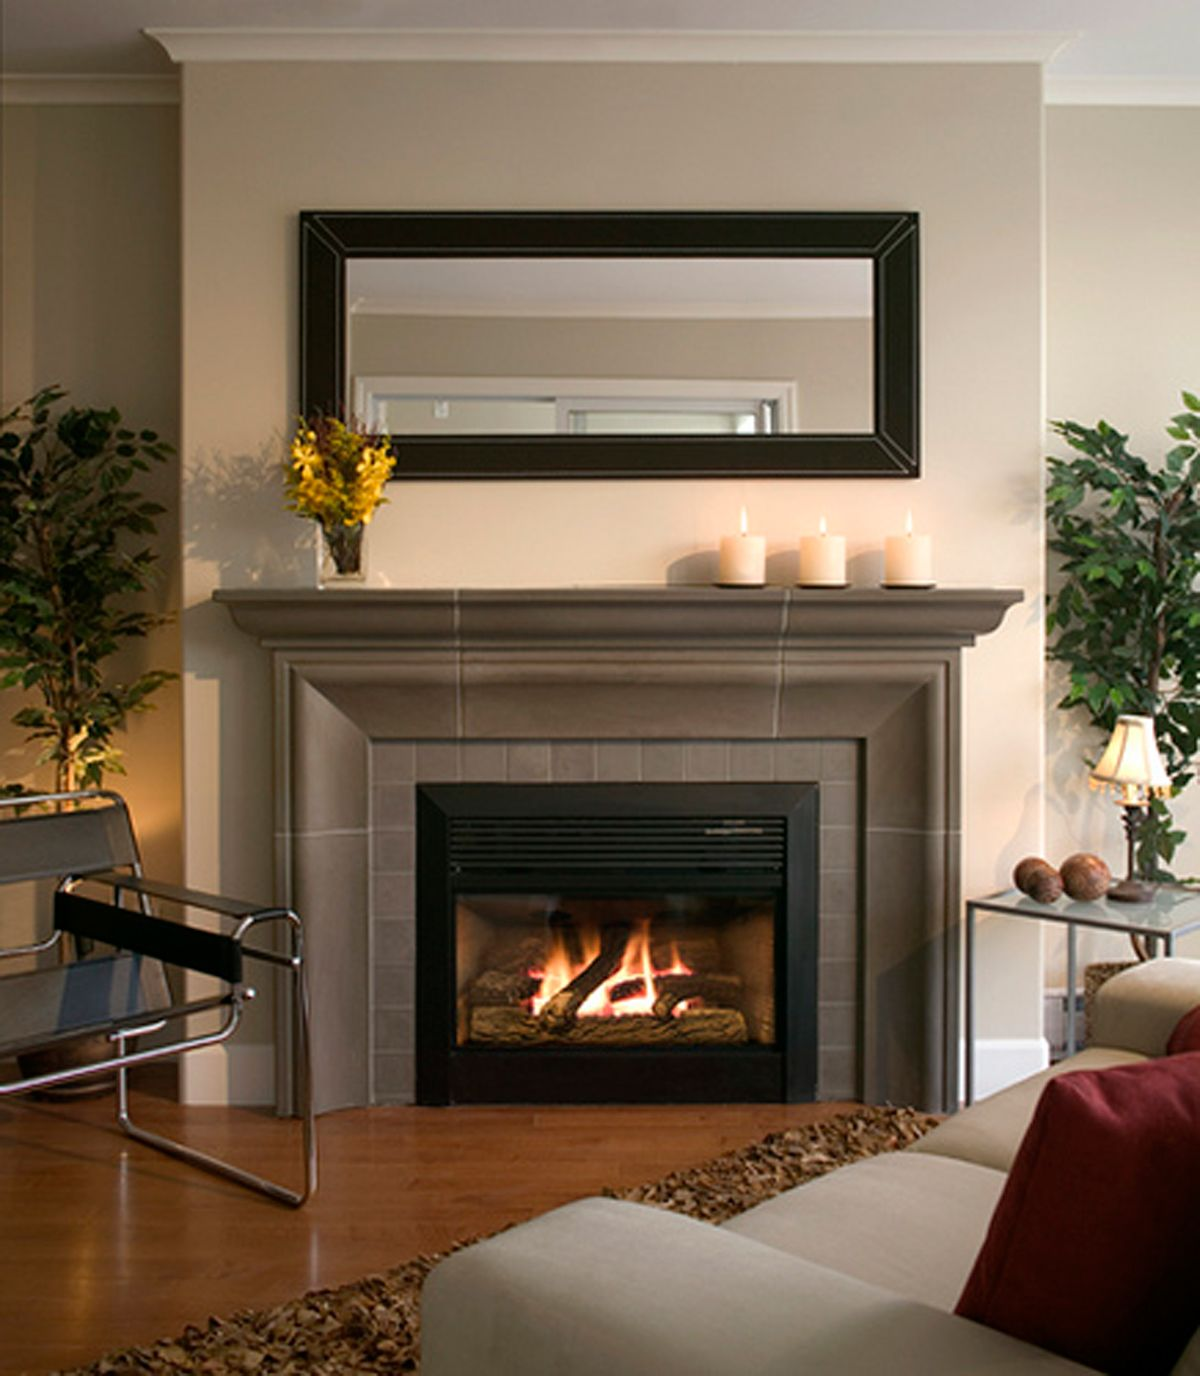 fireplaces designs | Contemporary Gas Fireplace Designs with Fascinating  Decorations Ideas .